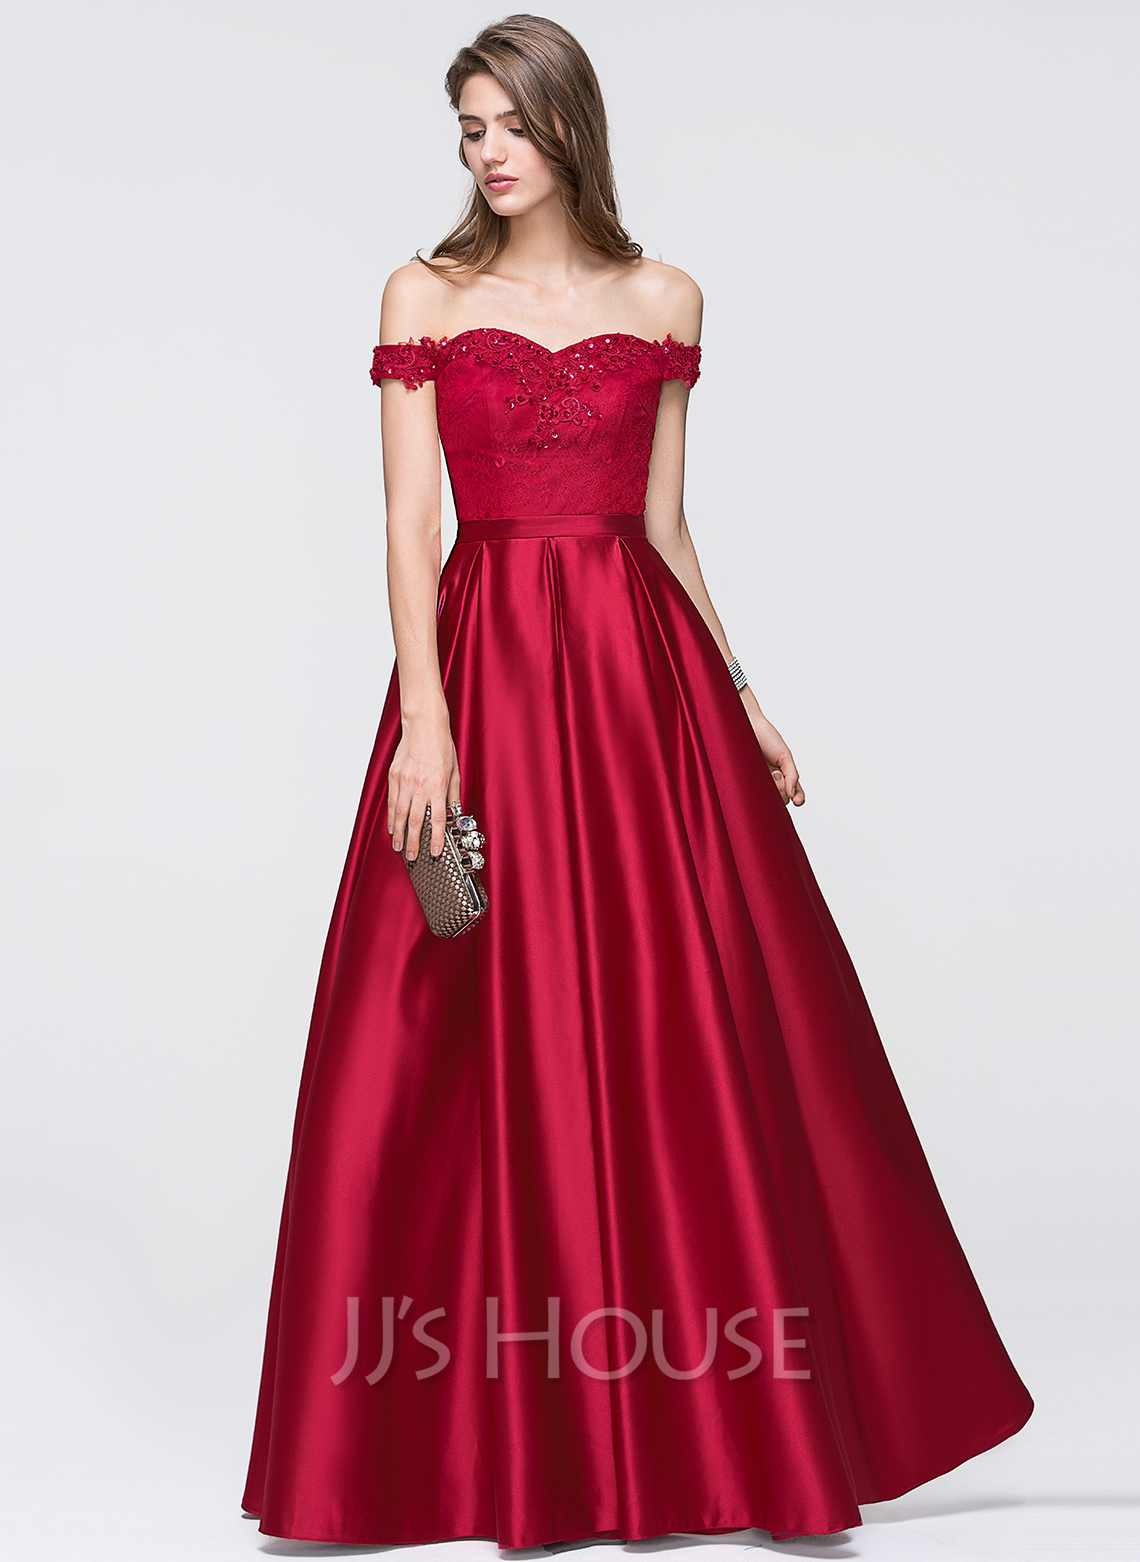 bae1f45c8efb A-Line/Princess Off-the-Shoulder Floor-Length Satin Prom Dresses. Loading  zoom